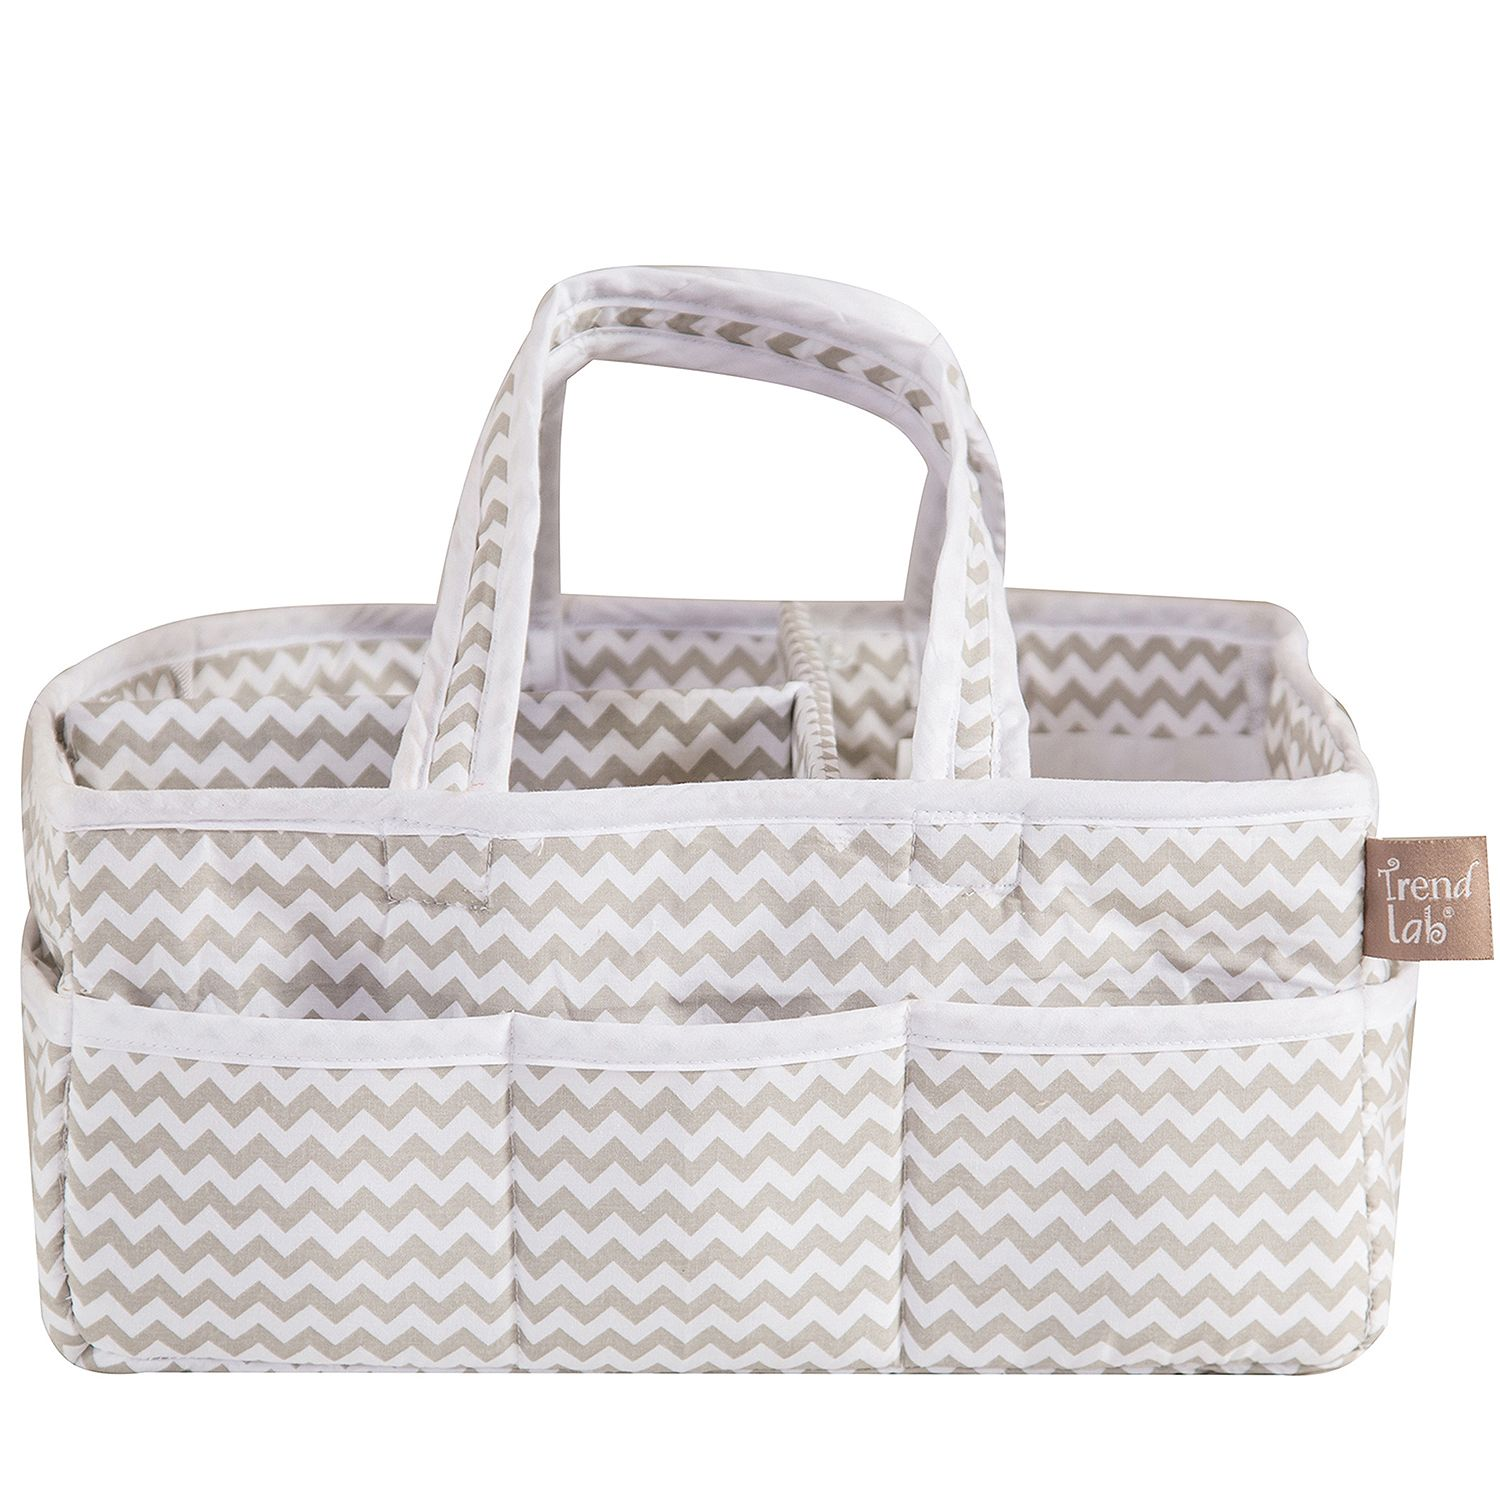 Trend Lab Storage Caddy, Dove Gray Chevron, Lightly padde...